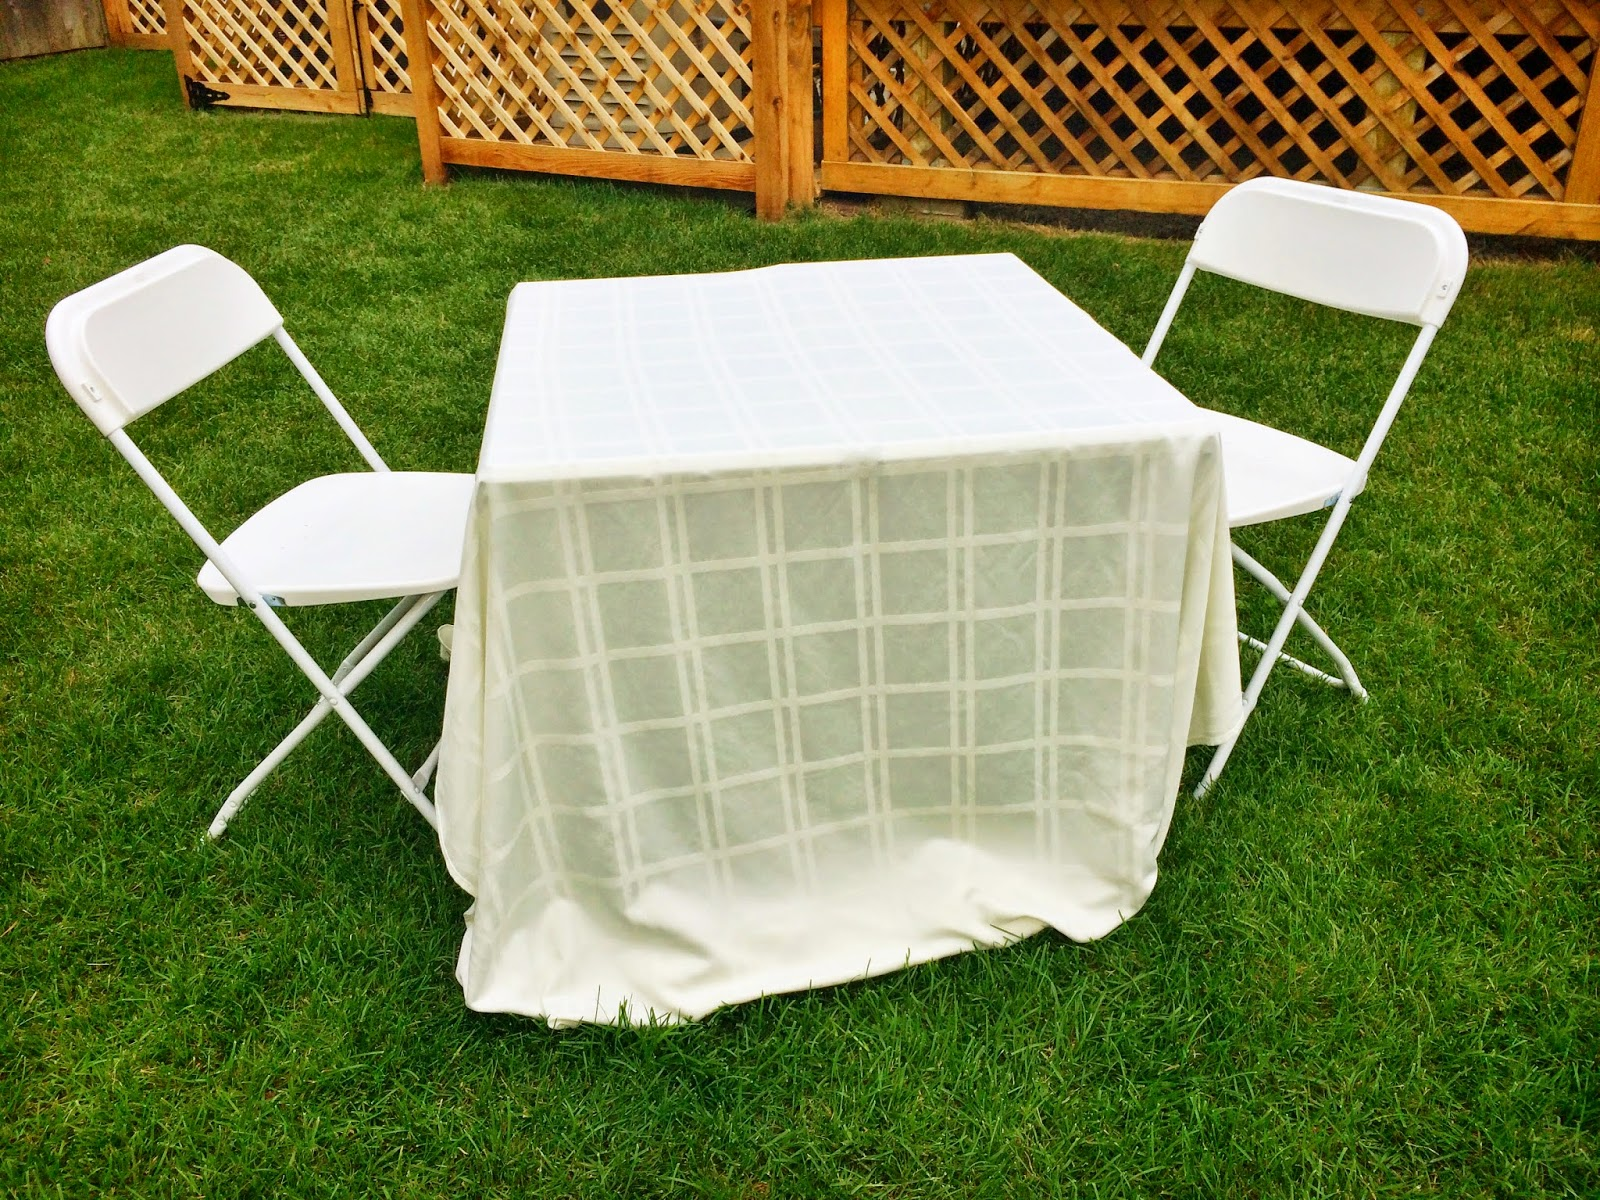 Dîner en Blanc table and chairs | all dressed up with nothing to drink...